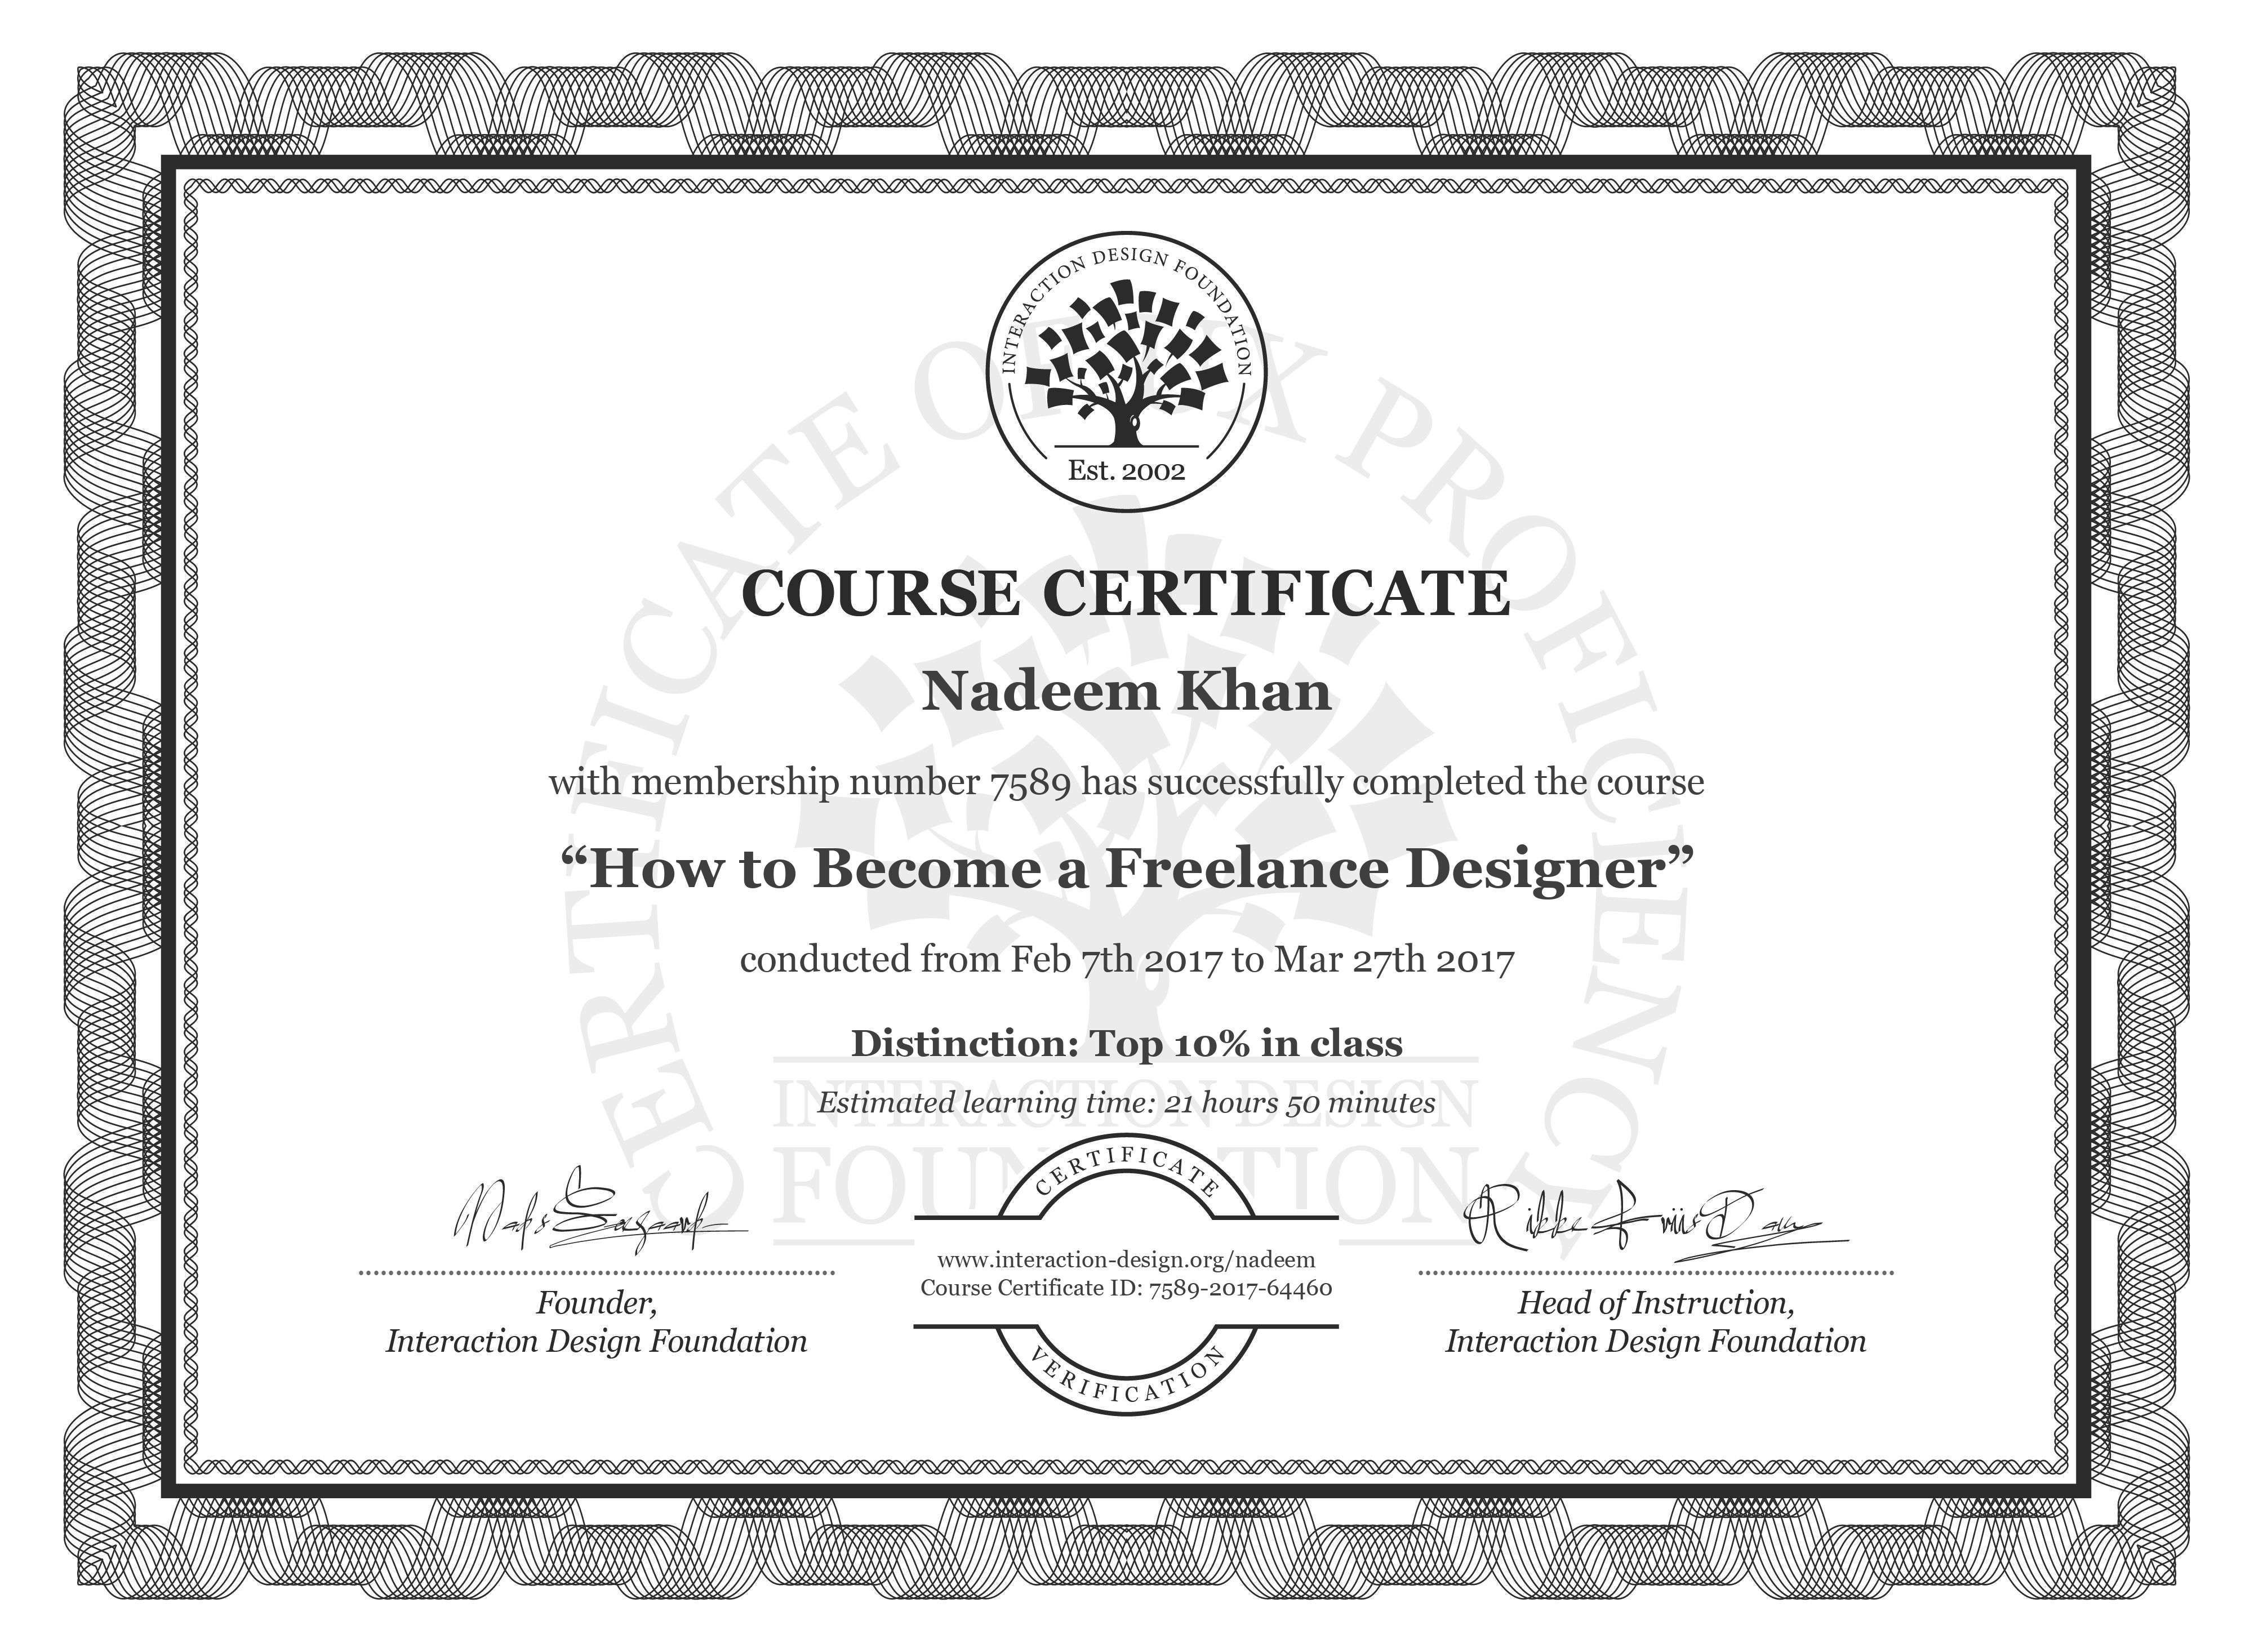 Nadeem Khan's Course Certificate: How to Become a Freelance Designer